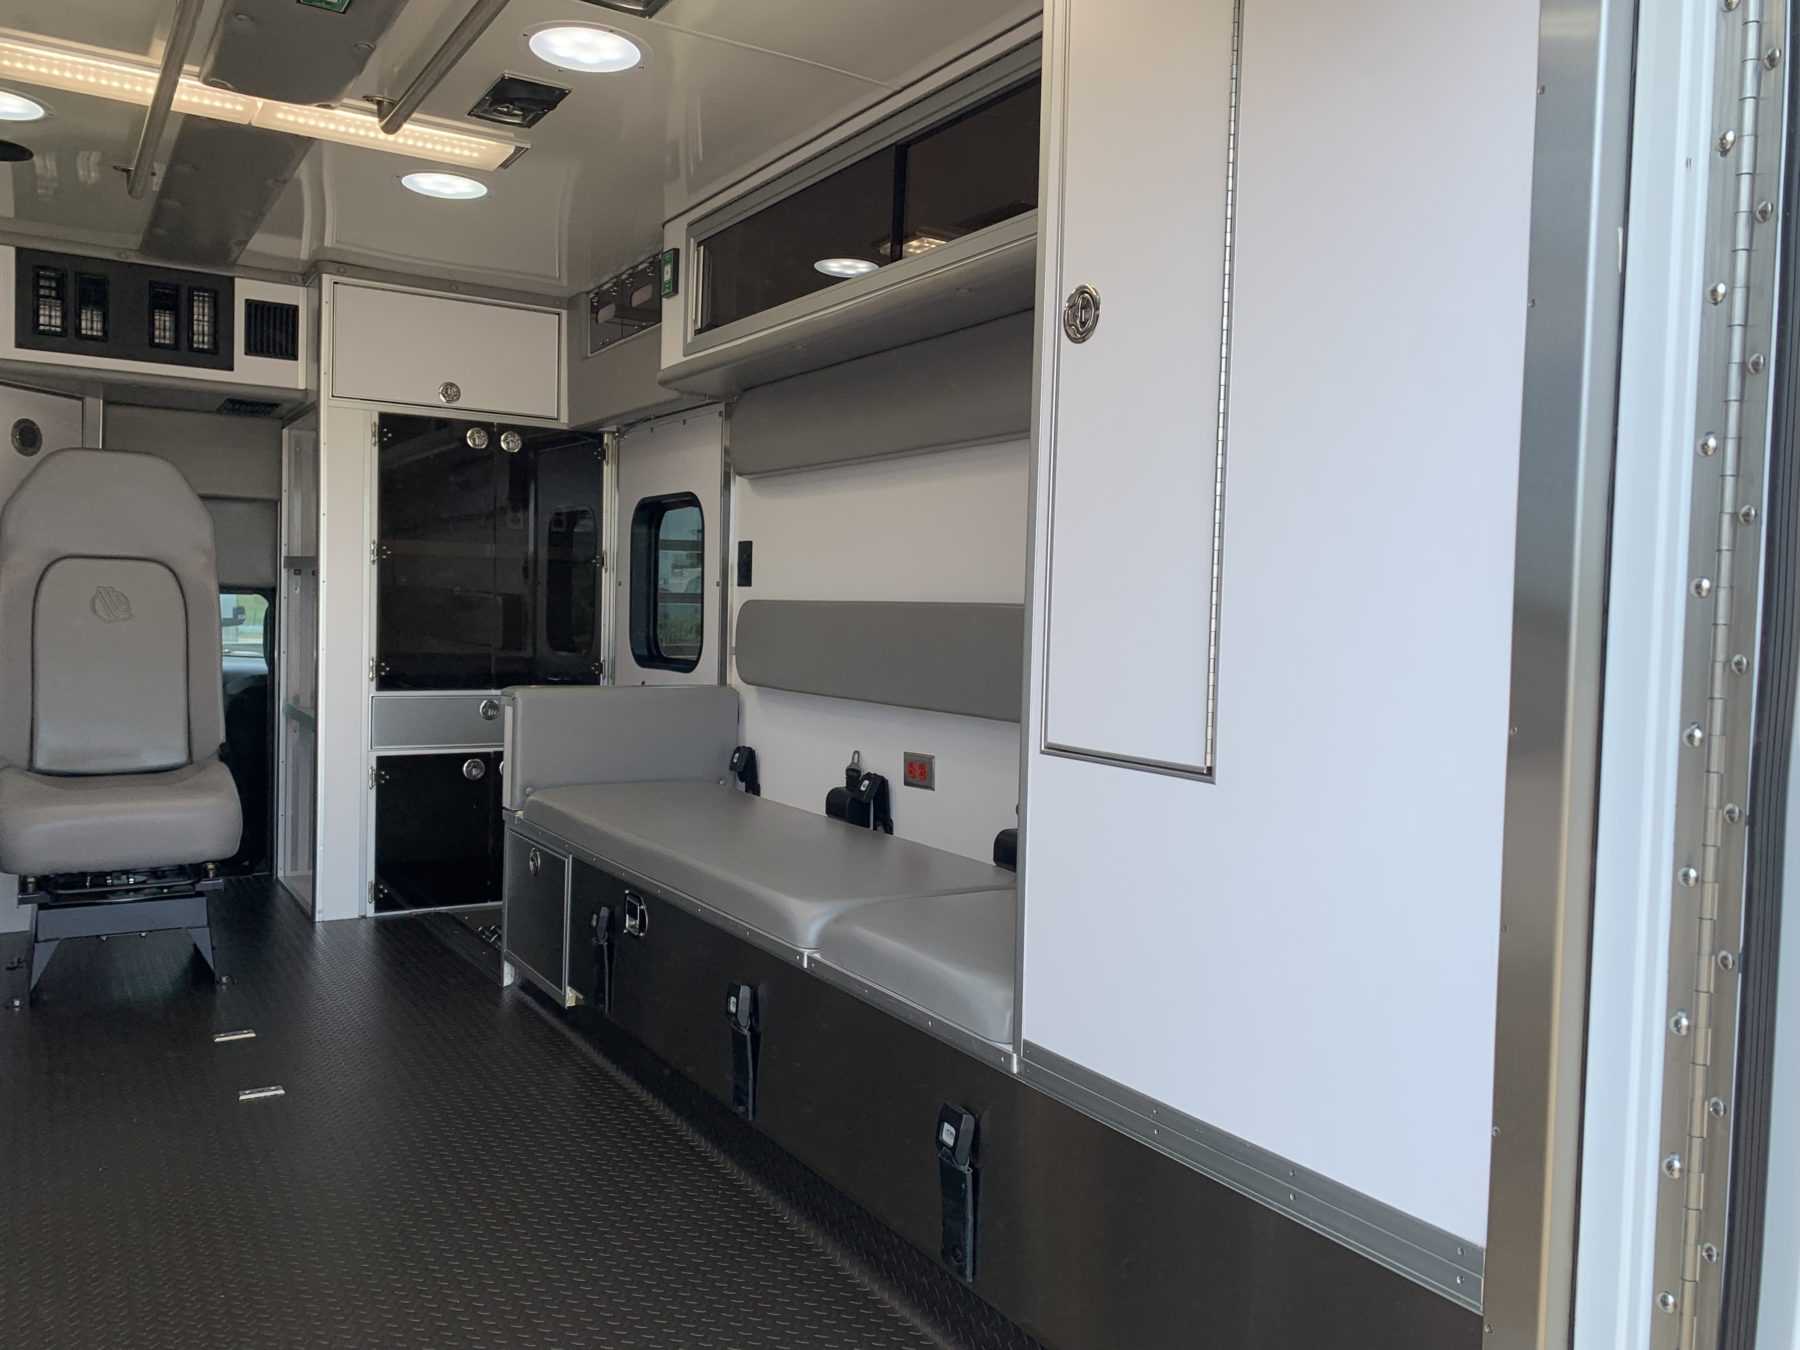 2021 Ram 4500 4x4 Heavy Duty Ambulance For Sale – Picture 12